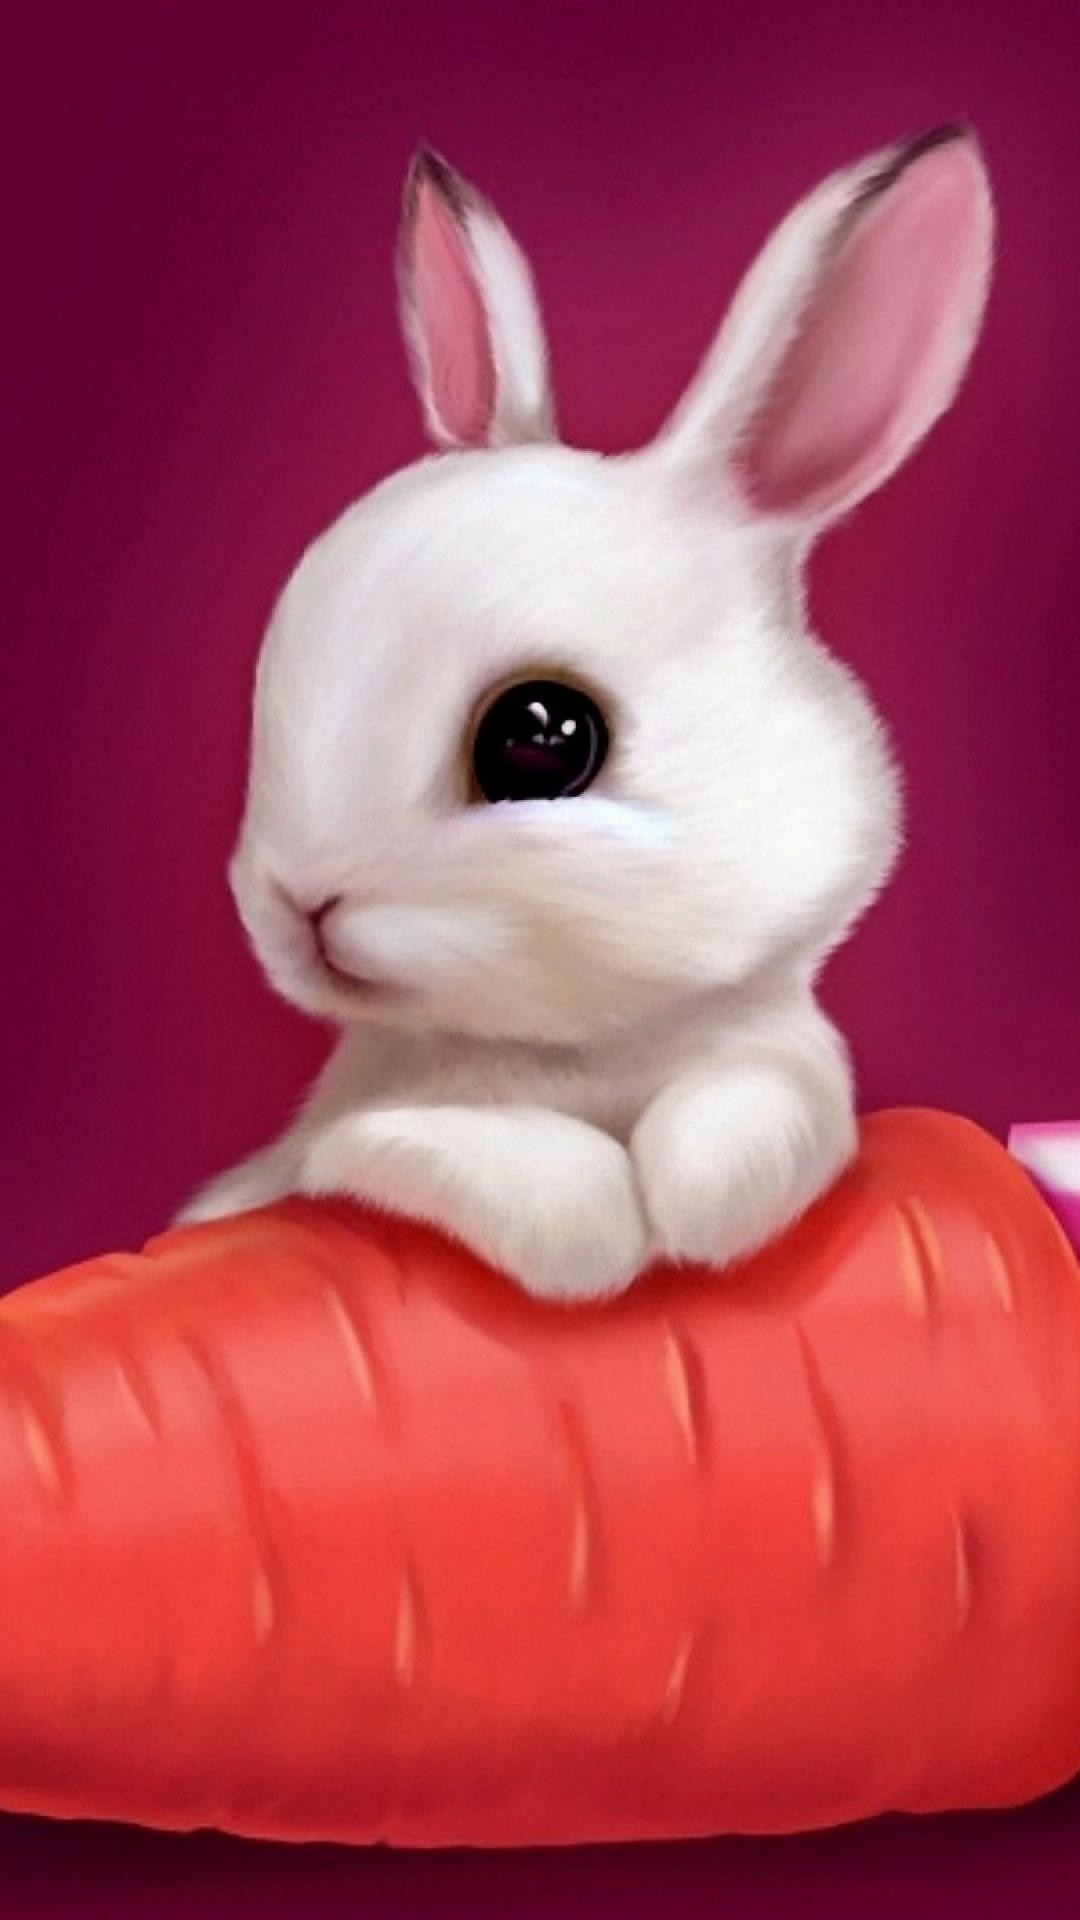 Cute Bunny Drawing Wallpaper Playboy Bunny Wallpapers 72 Images